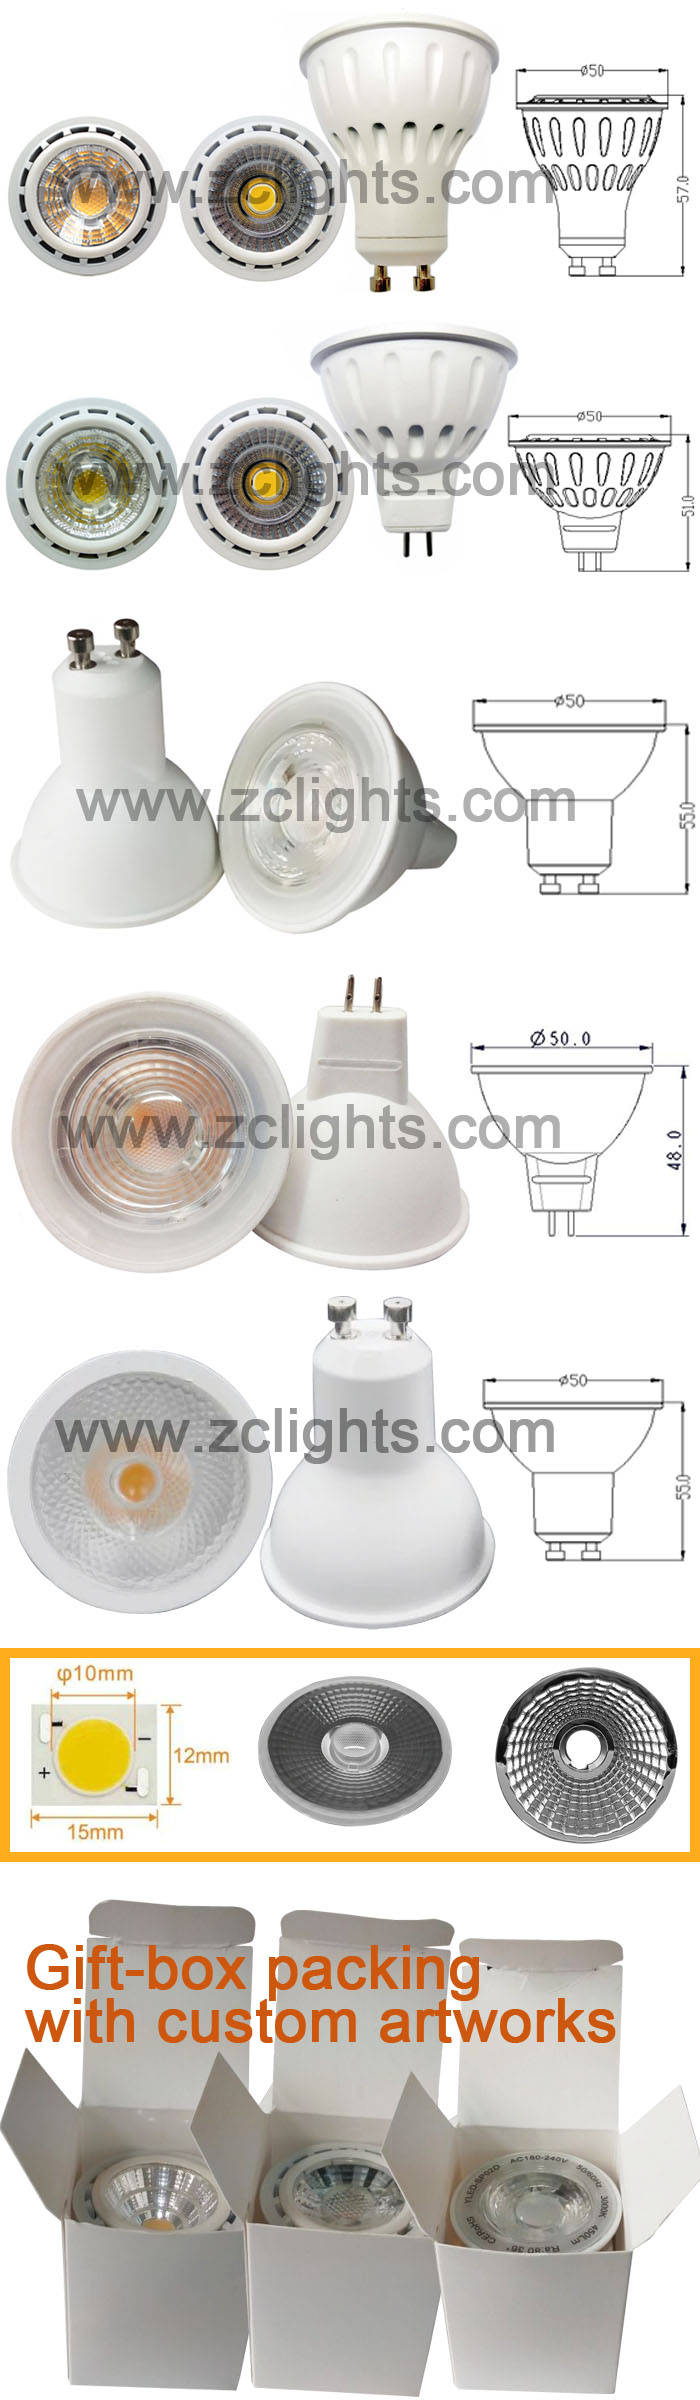 LED Spotlight MR16 Gu5.3 LED Spotlight 12V LED Lamp